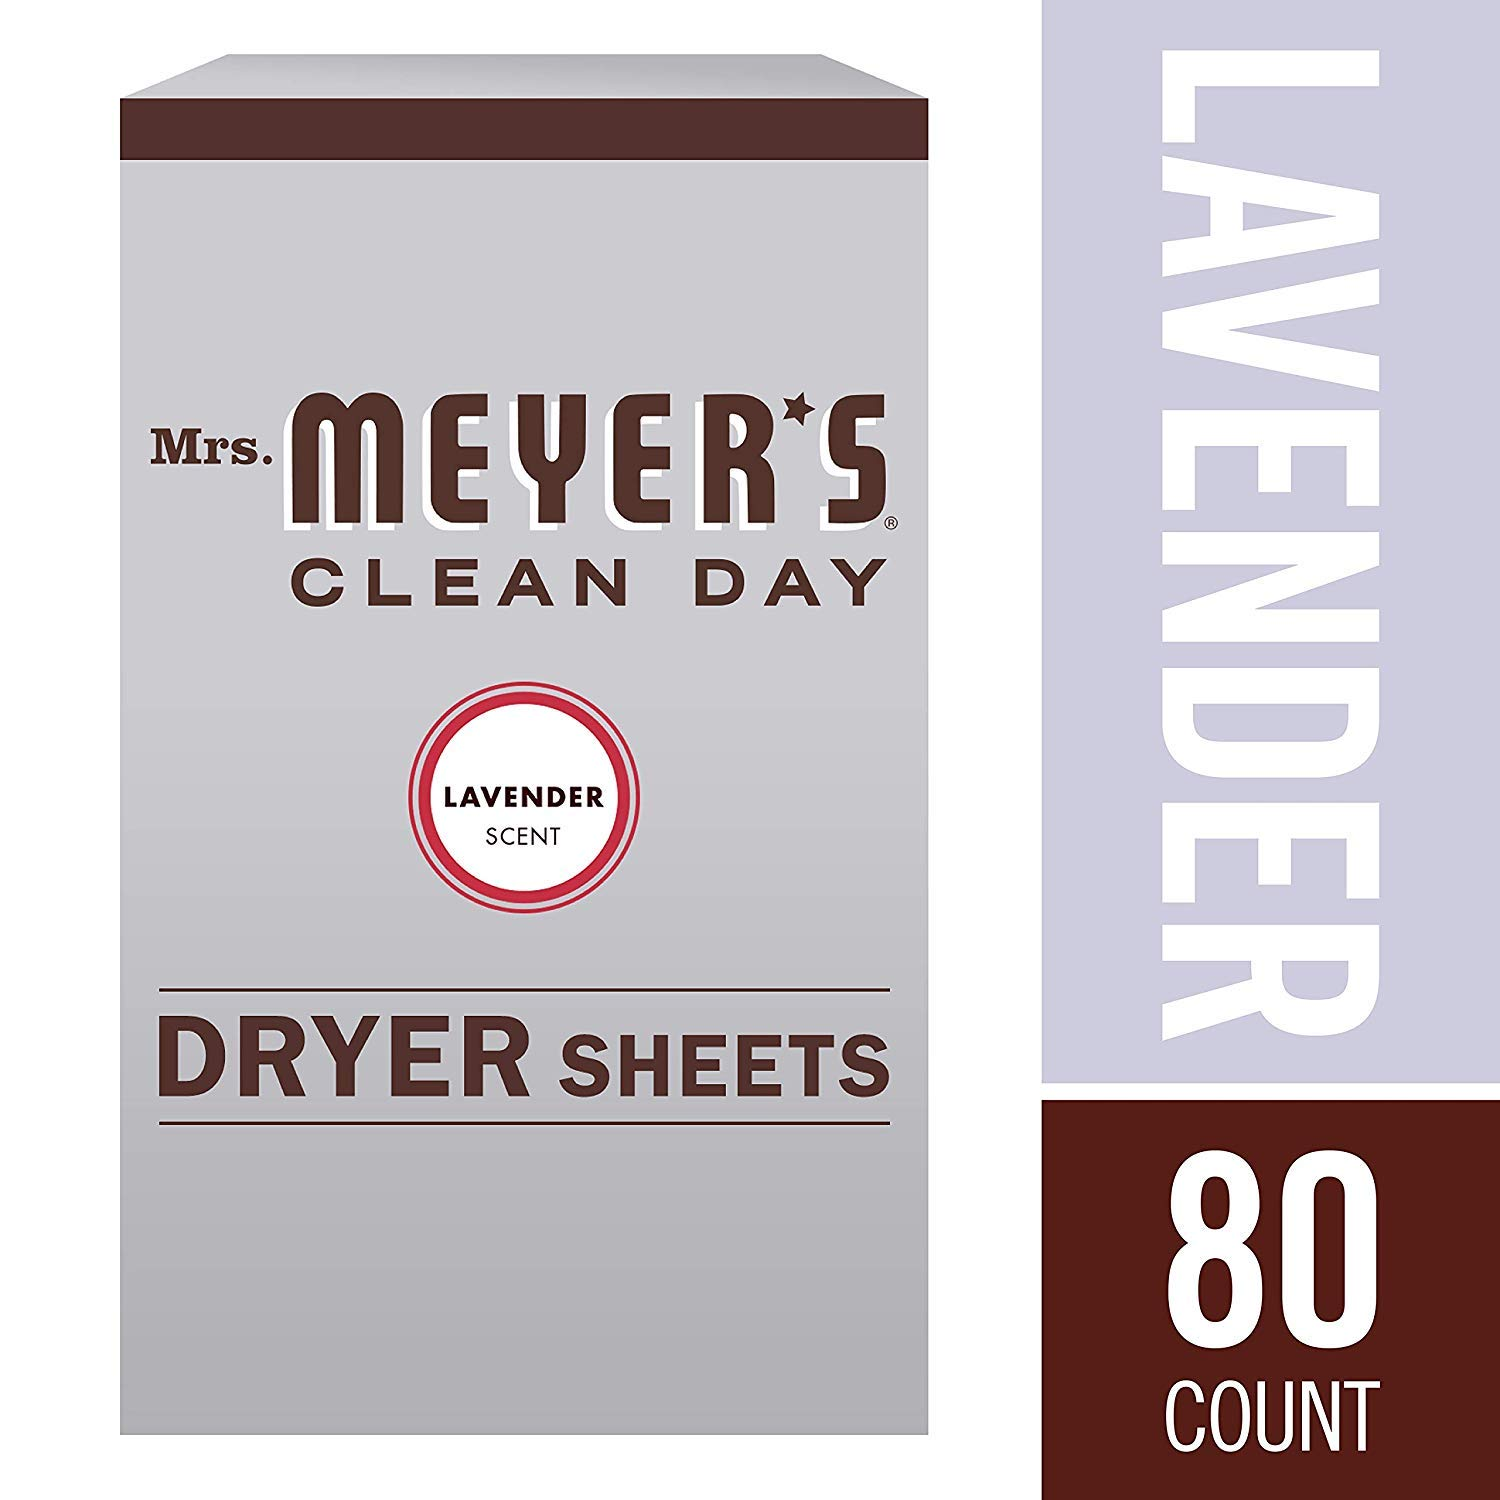 Mrs. Meyer's Clean Day Dryer Sheets, Lavender, 80 ct (2 Pack, 80ct)